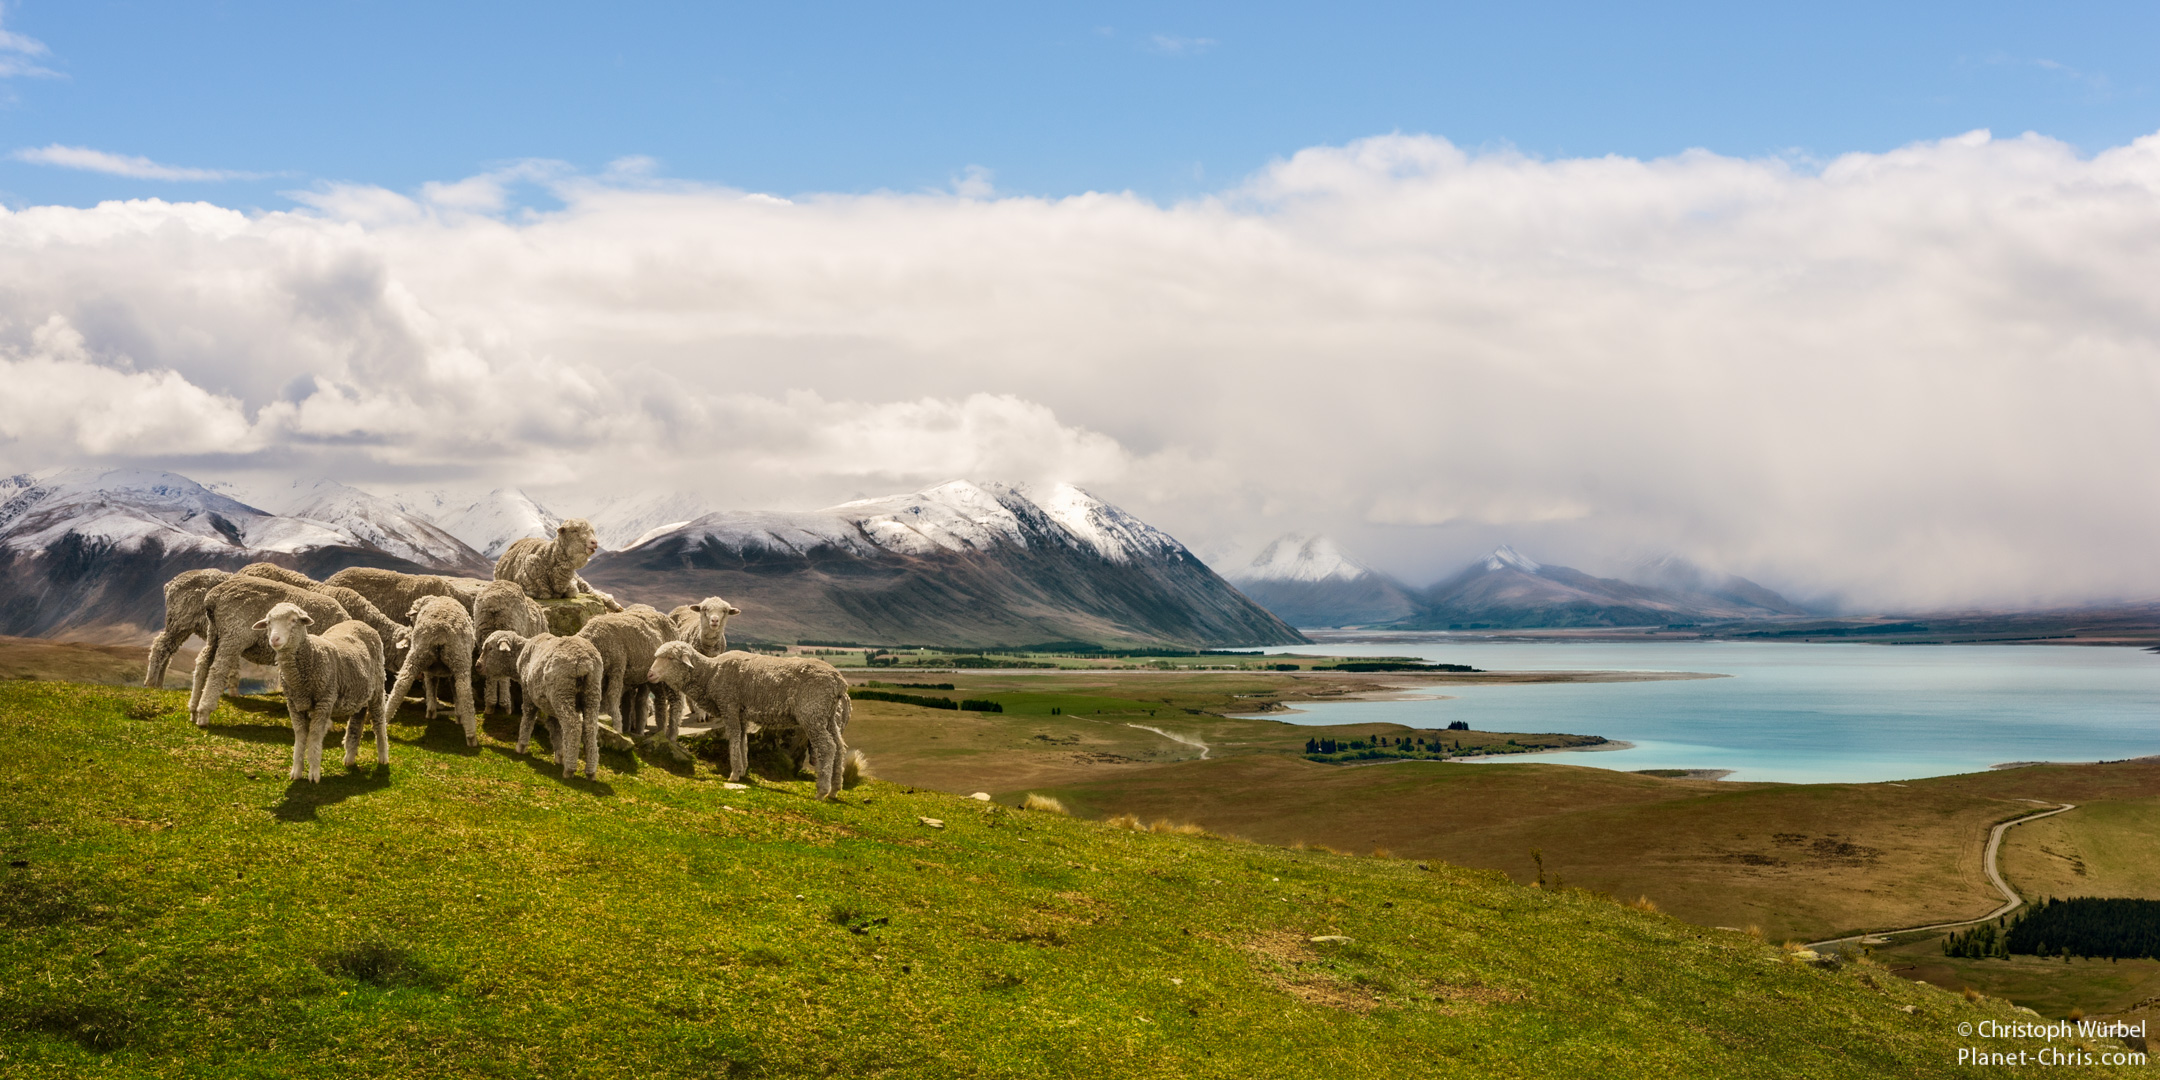 Sheeps in the foreground, and mountains as well as lake Tekapo in the background